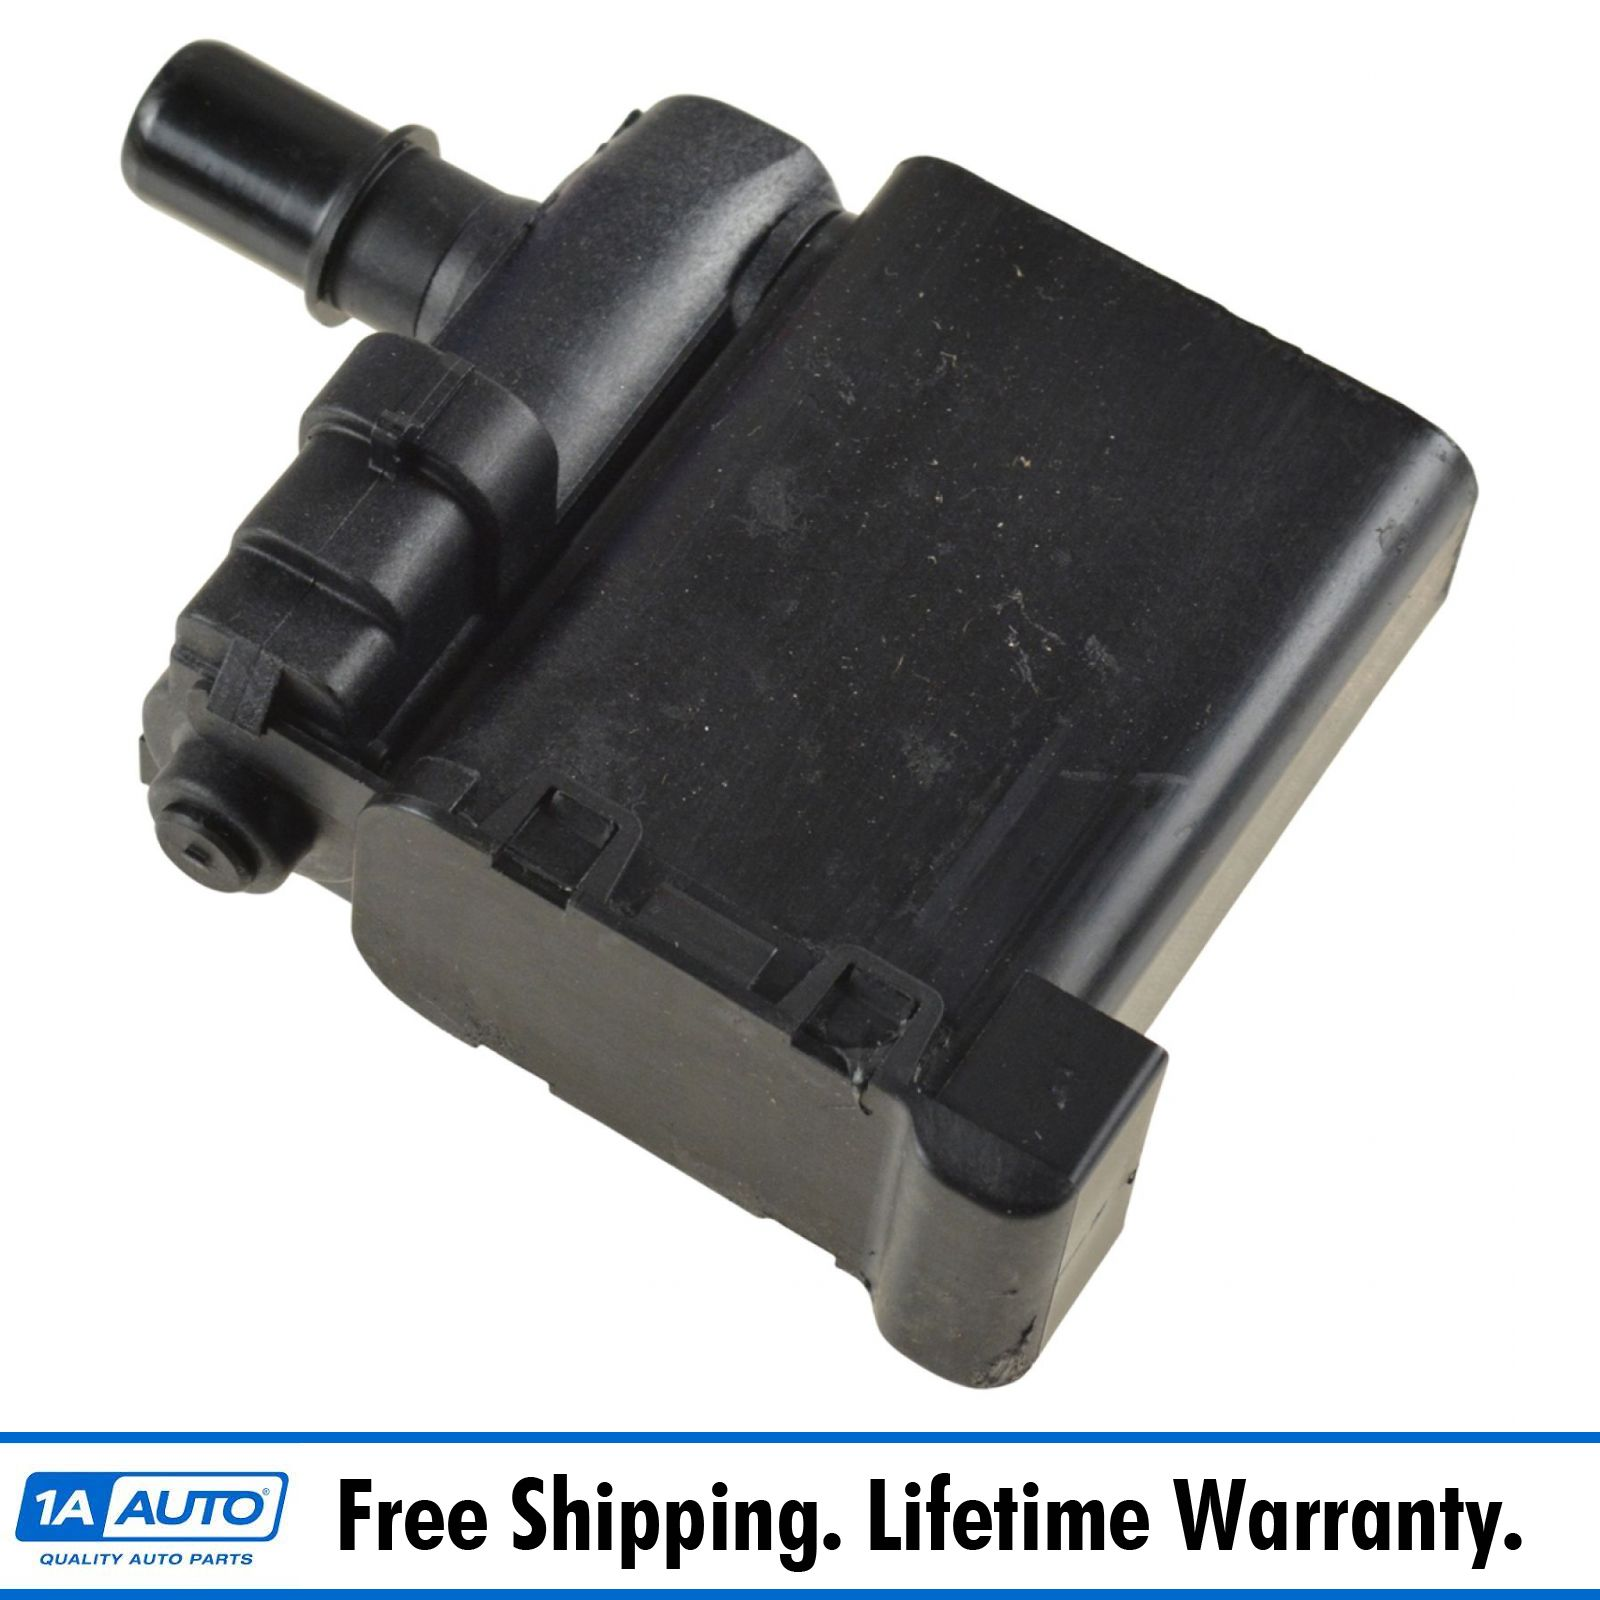 AC DELCO 214-1091 Upgrade Canister Vent Valve for Cadillac Chevy GMC New